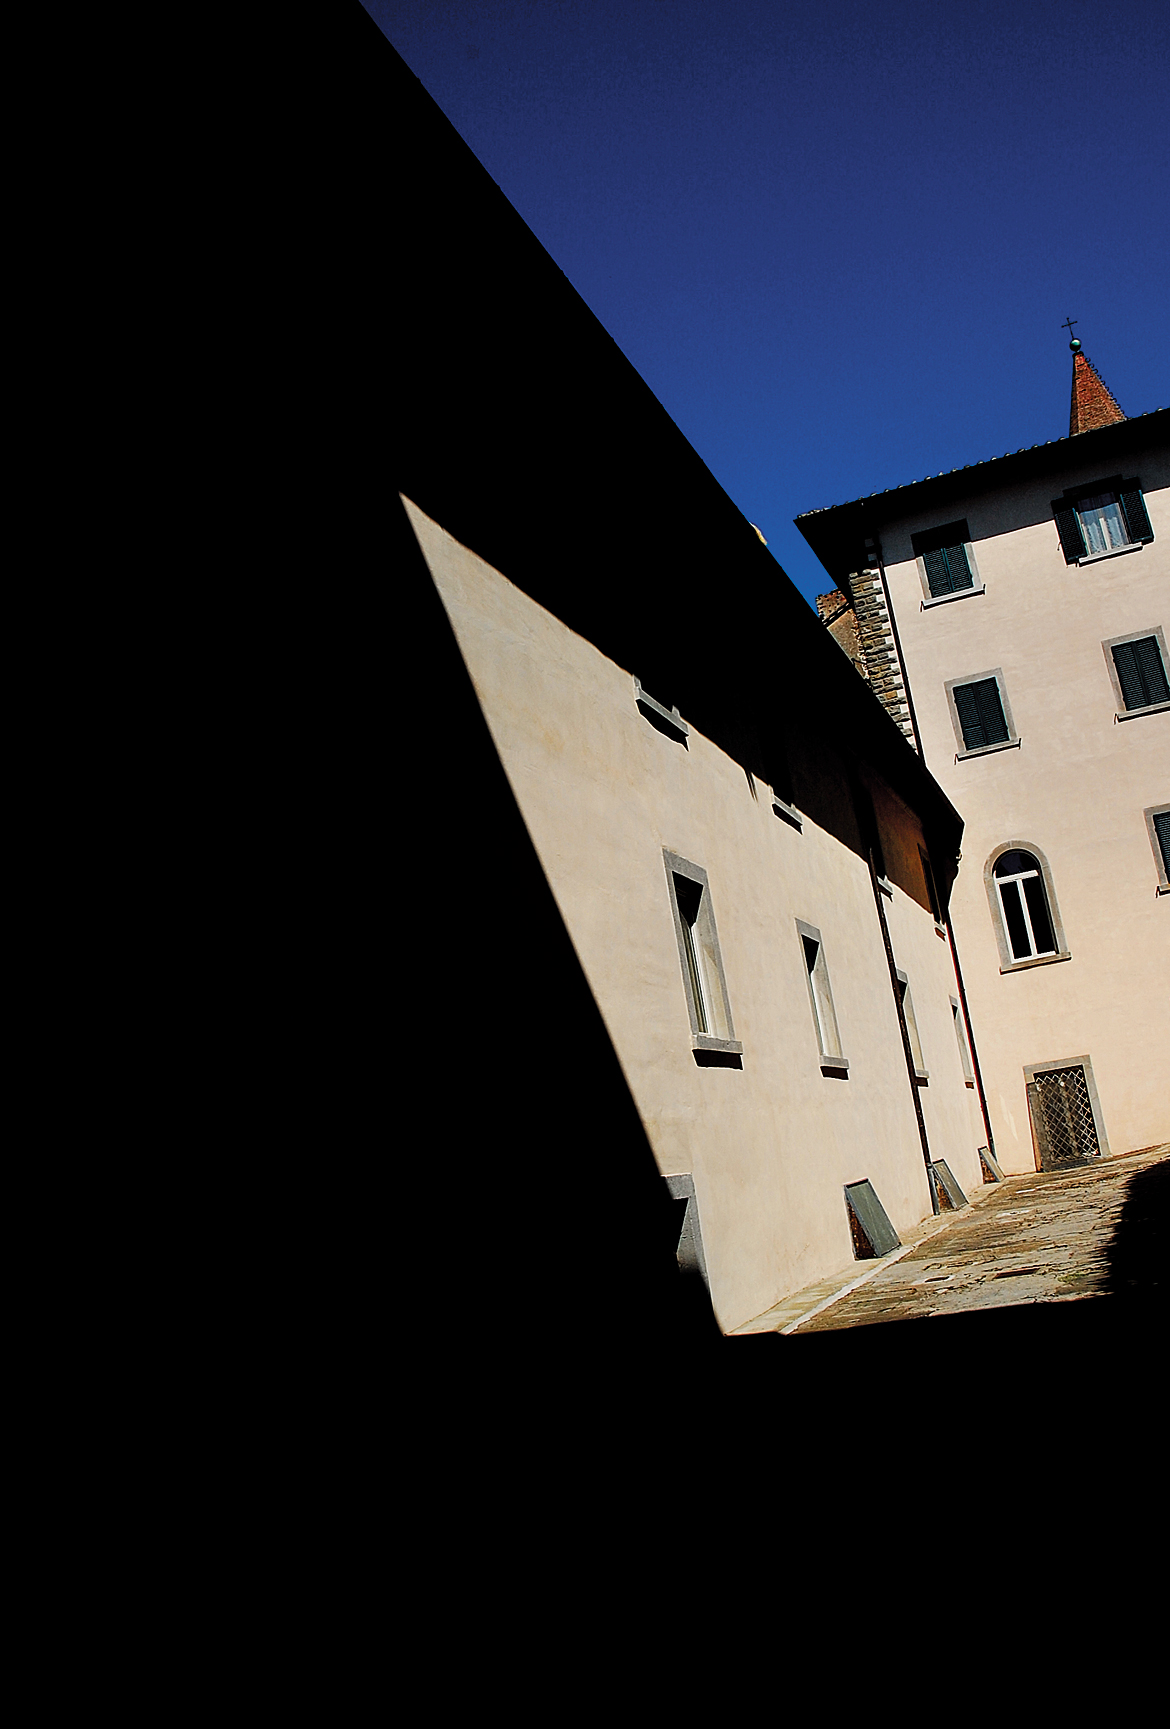 Hotel Oasi Neumann at Cortona, in an interplay of light and shadow